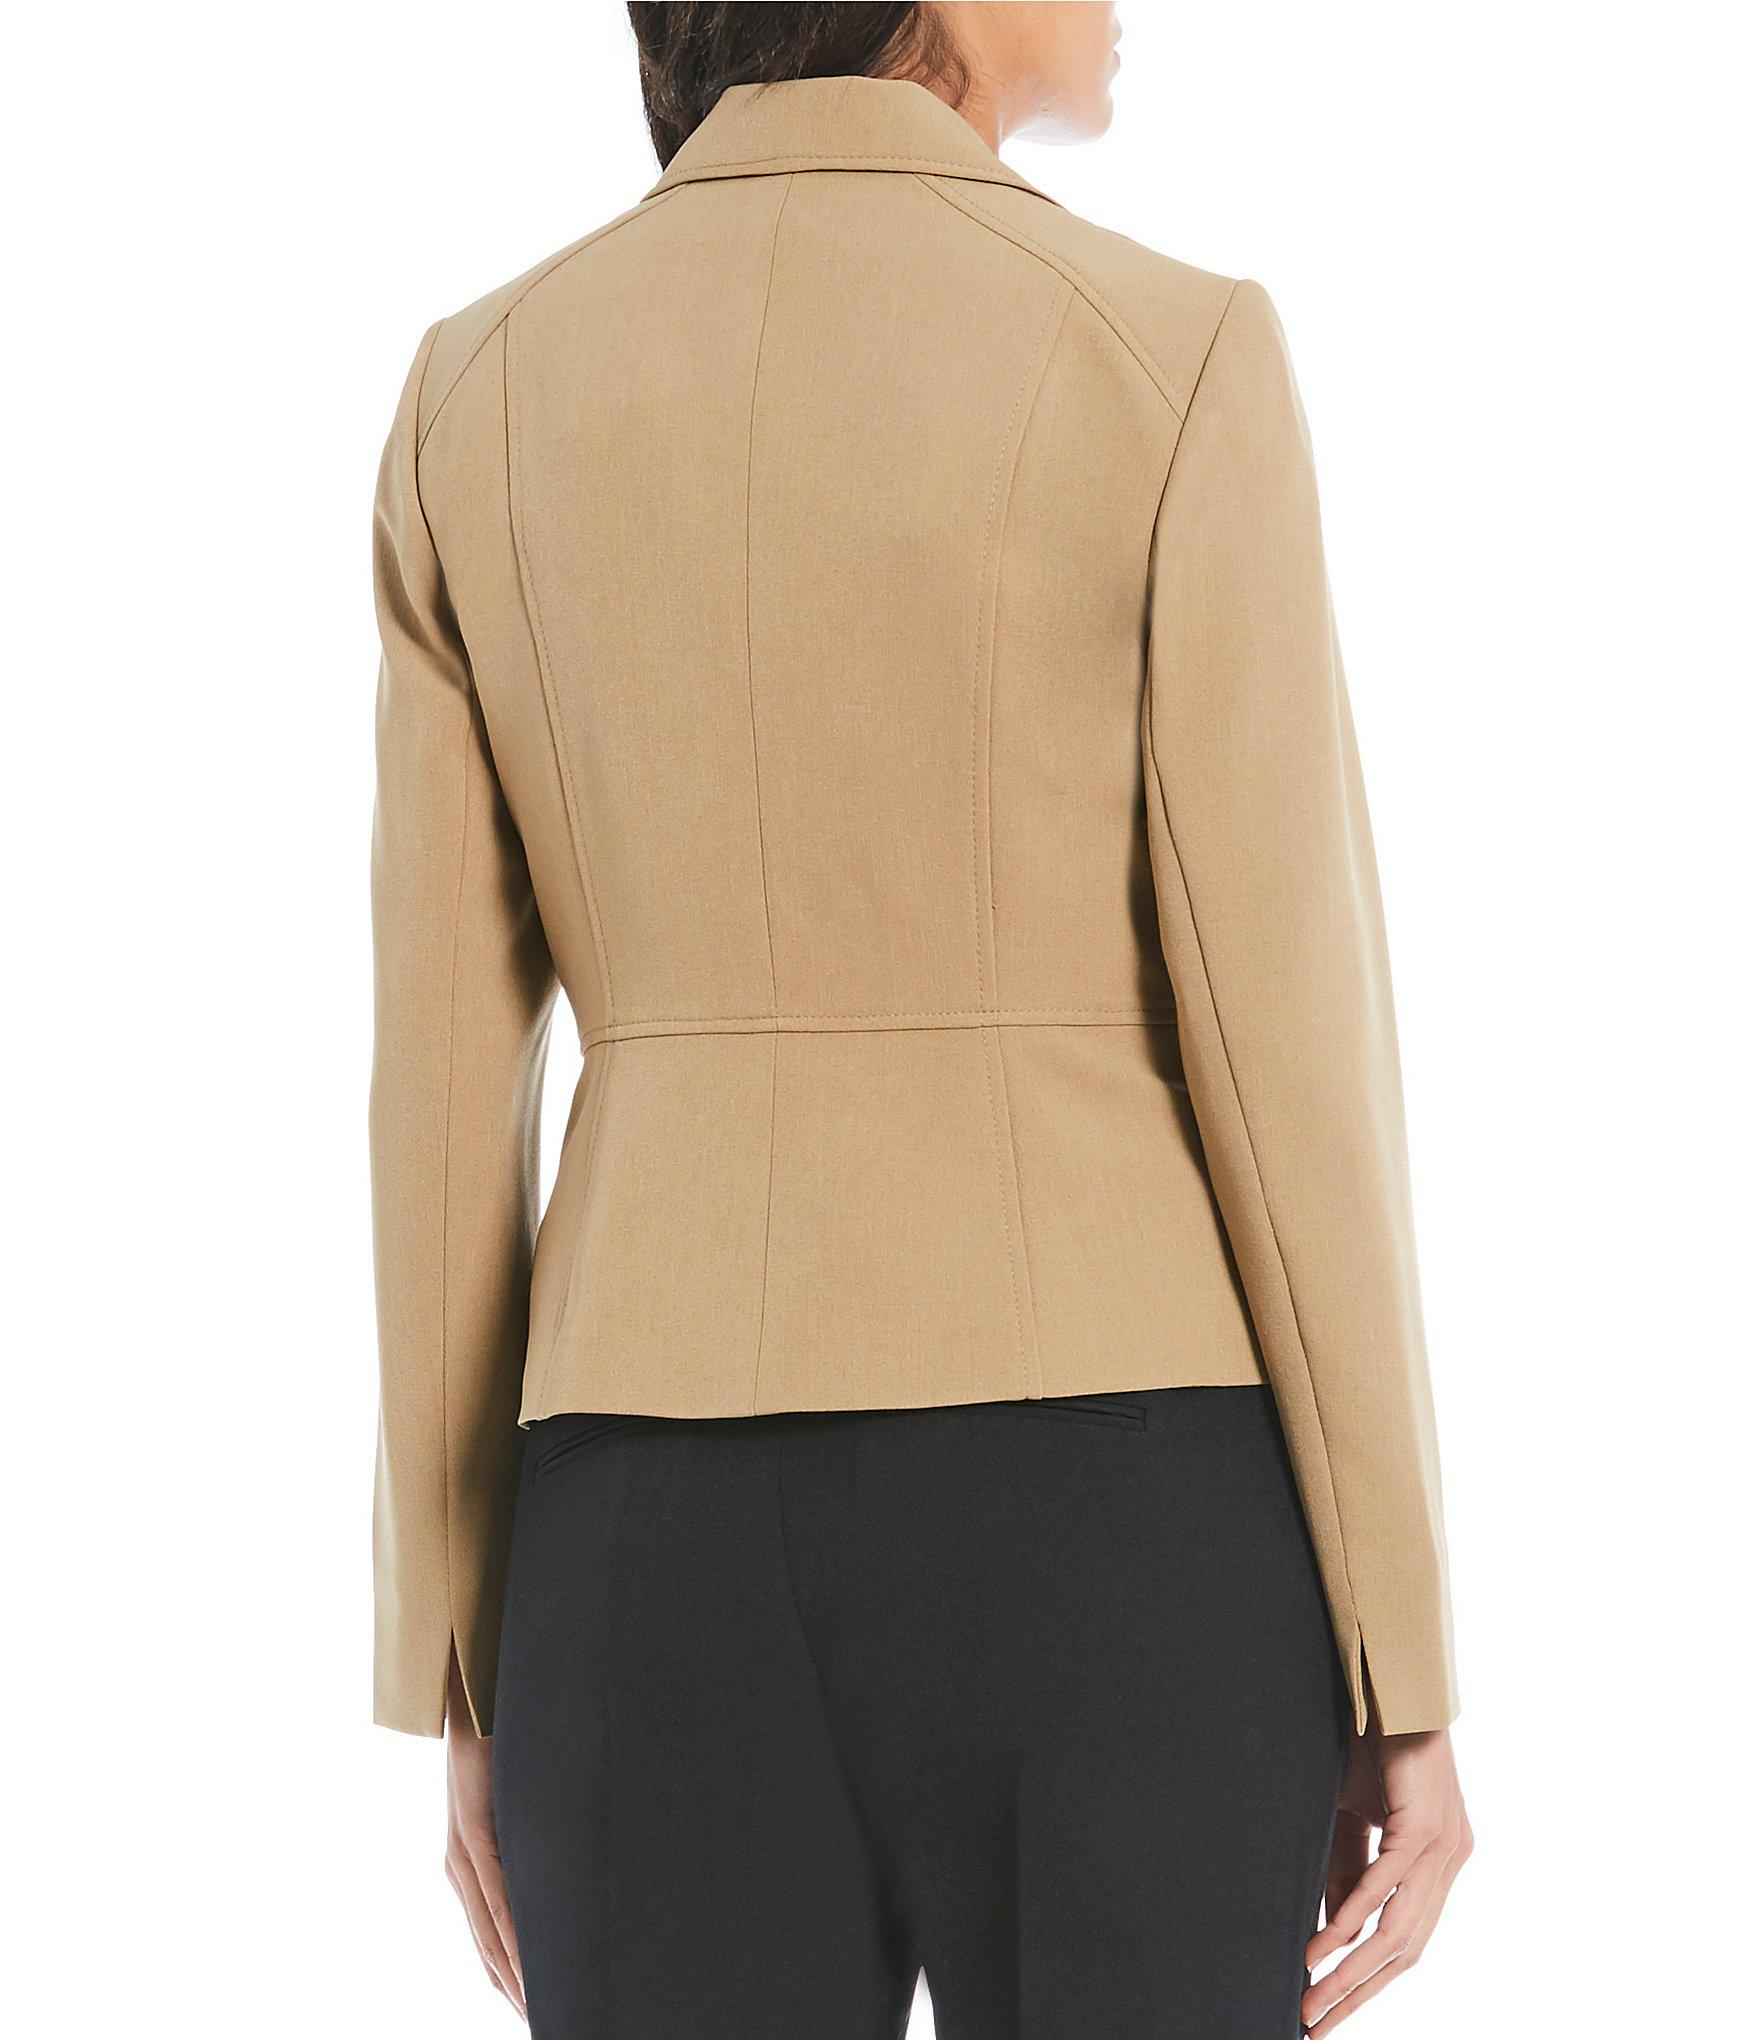 afea96429a0 Kasper - Natural Petite Size Stretch Crepe Notch Collar Jacket - Lyst. View  fullscreen